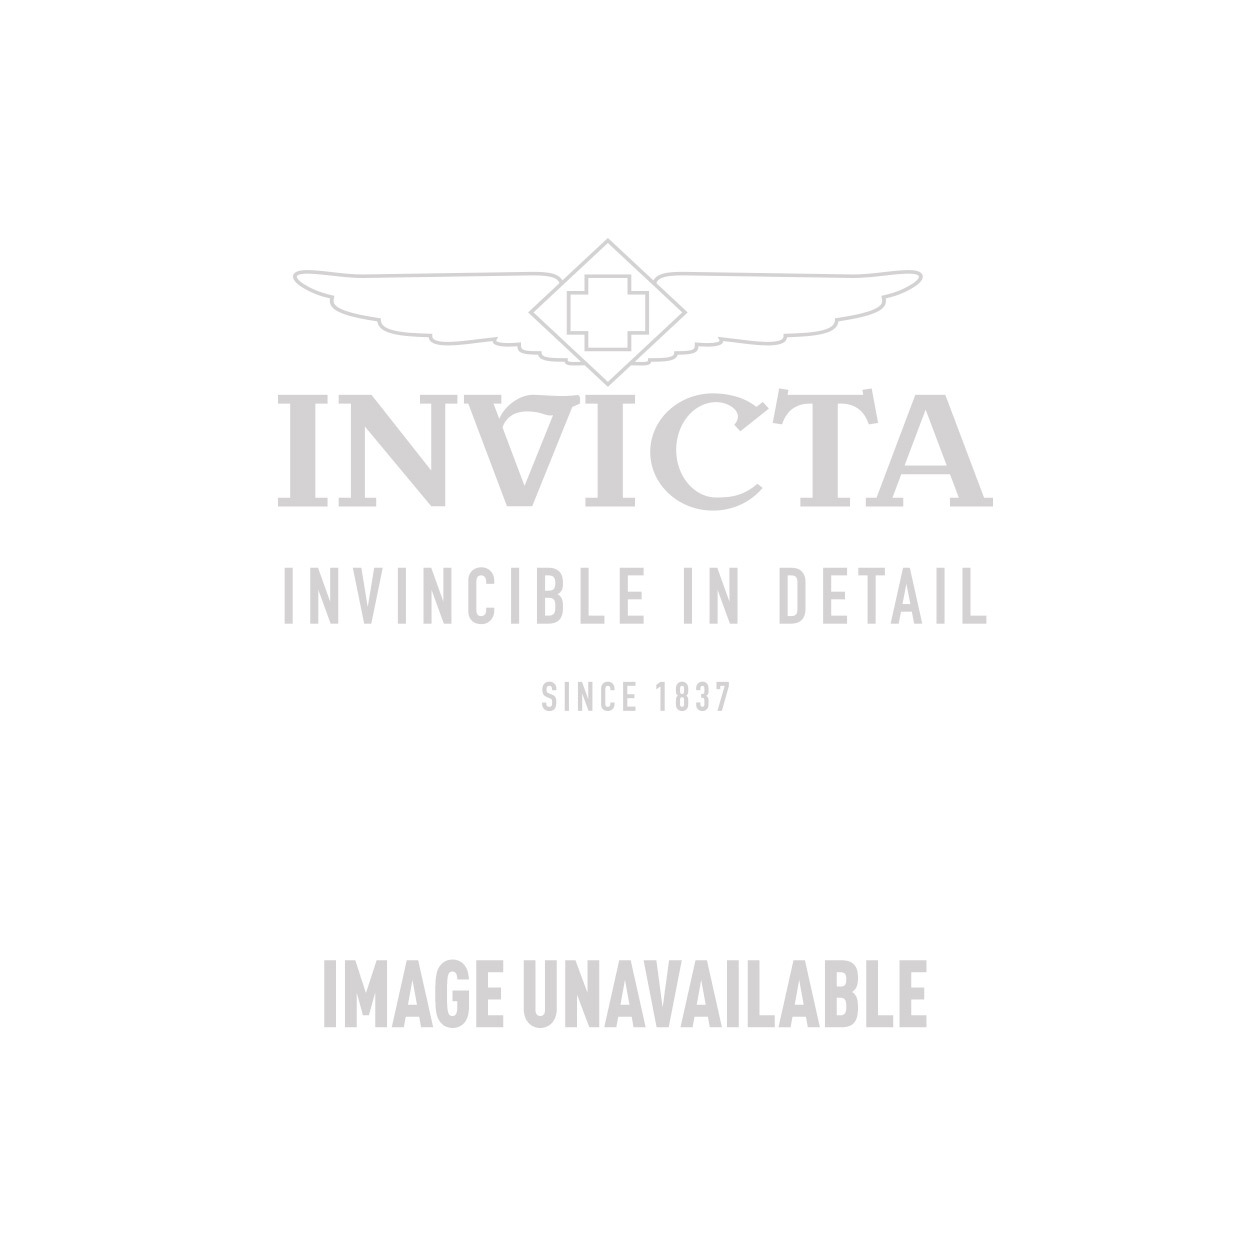 Invicta S. Coifman Swiss Made Quartz Watch - Stainless Steel case with Black tone Leather band - Model SC0153